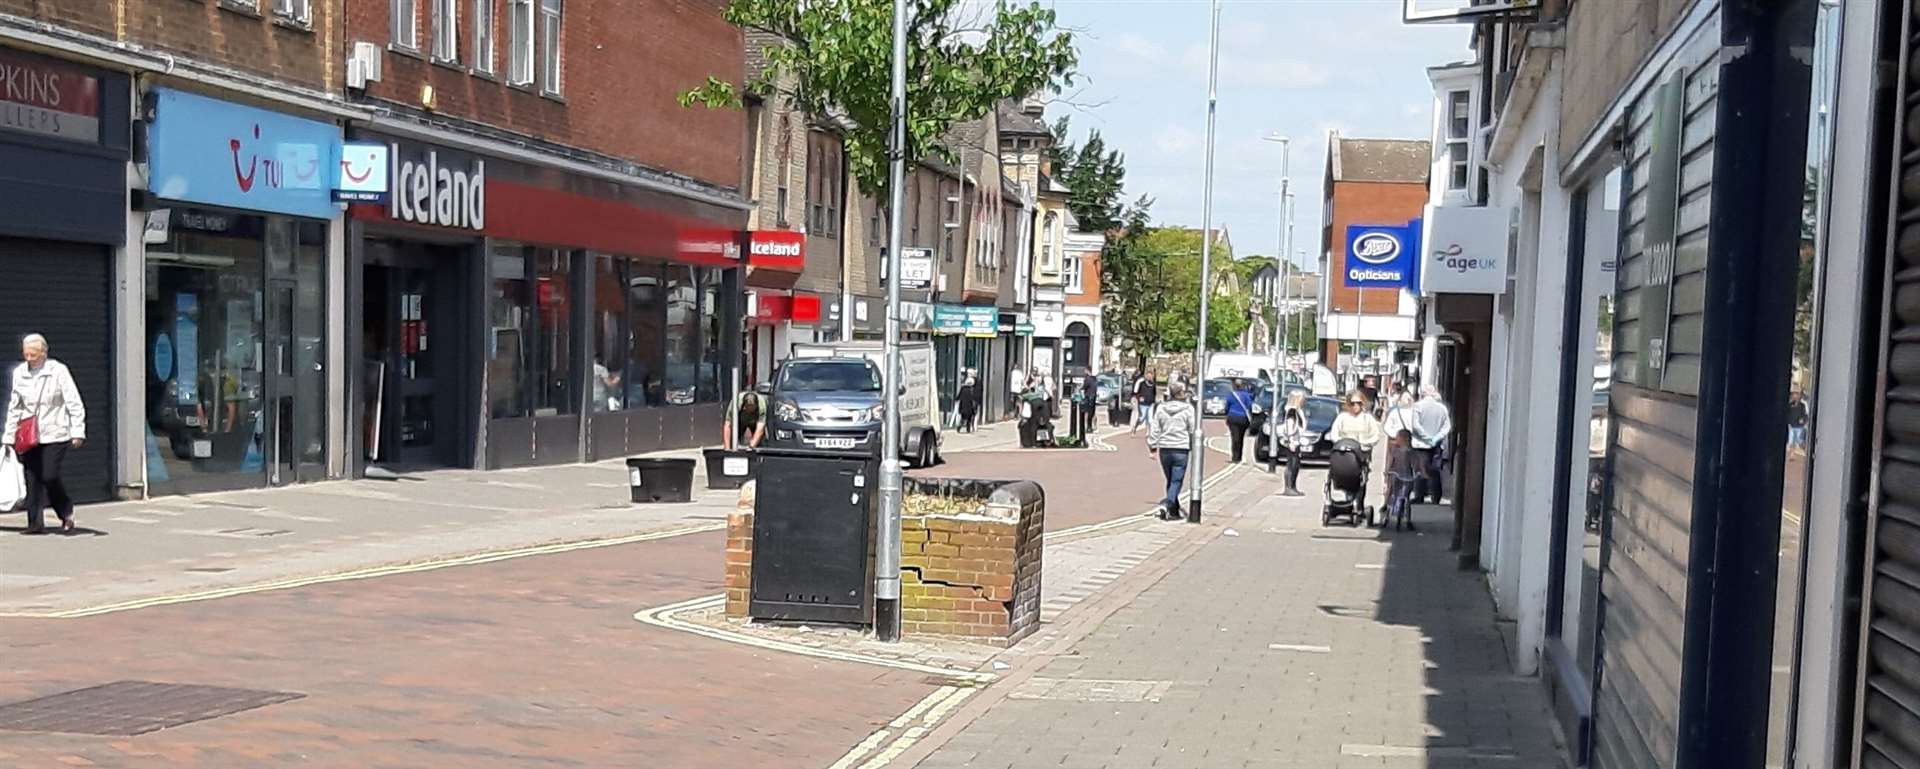 Vehicles will no longer be seen like this in Haverhill High Street between 10am and 4pm once the new covid-19 safety measures are brought in